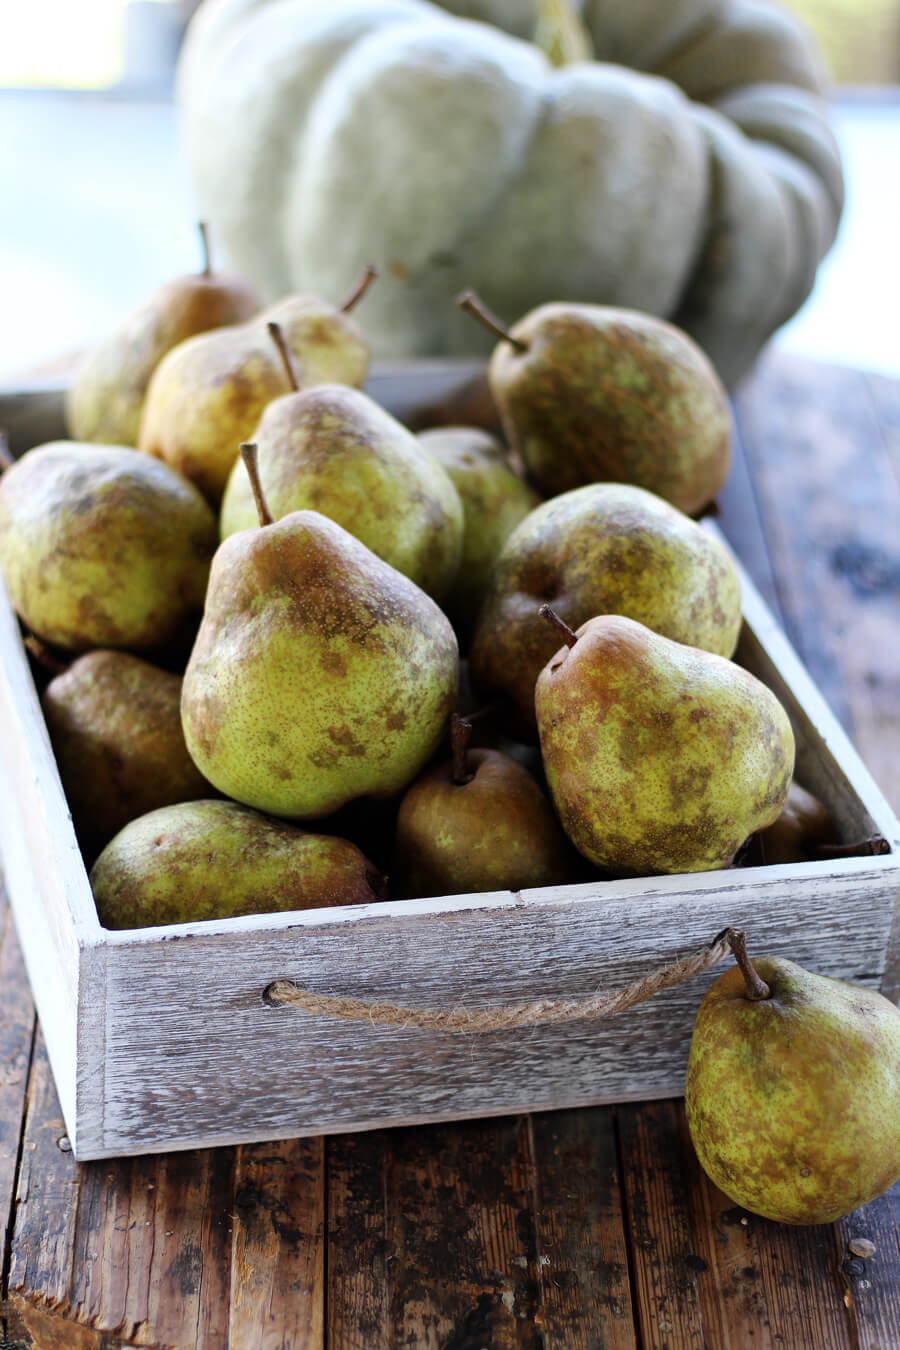 A wooden box filled with fresh pears